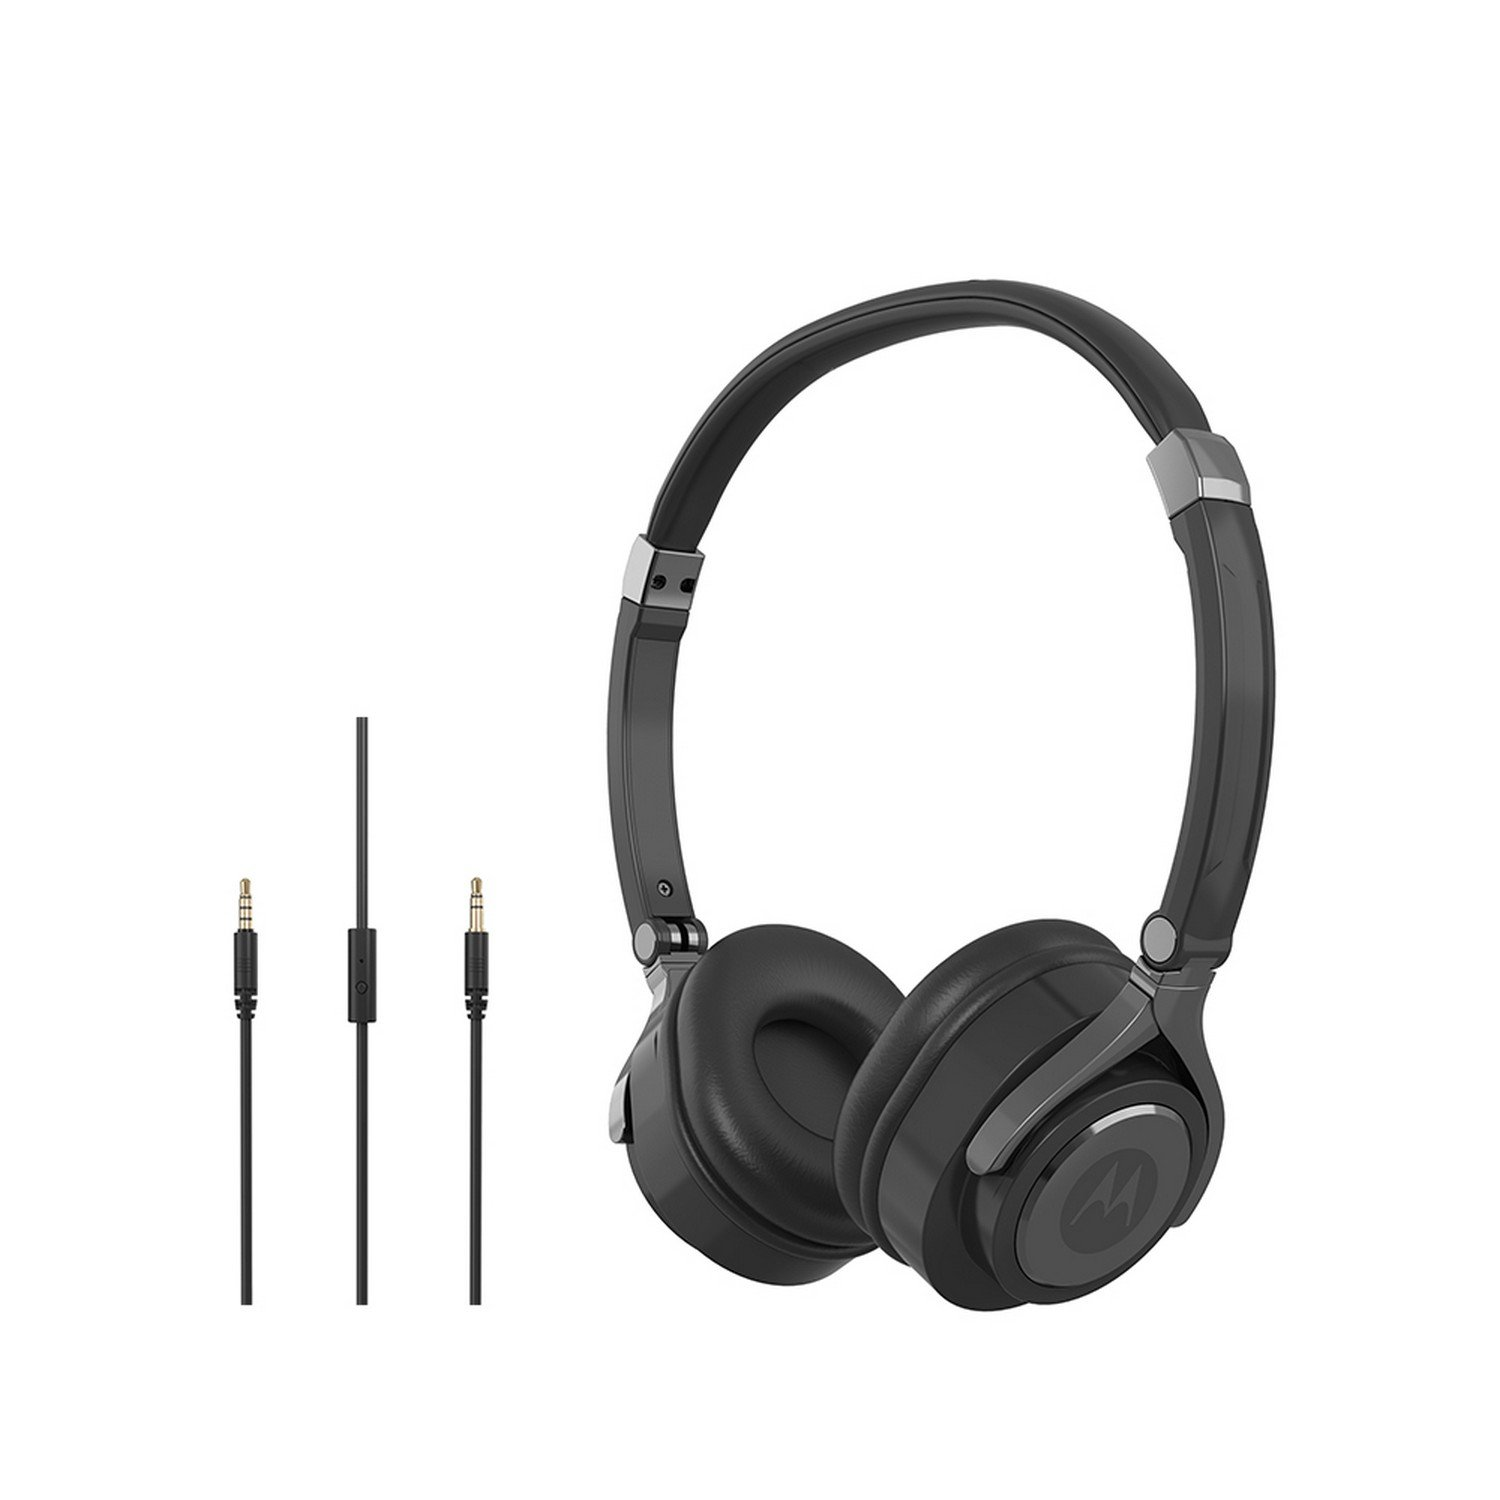 motorola headphones. motorola pulse 2 g11row wired headphone (black): buy (black) online at low price in india - amazon.in headphones a